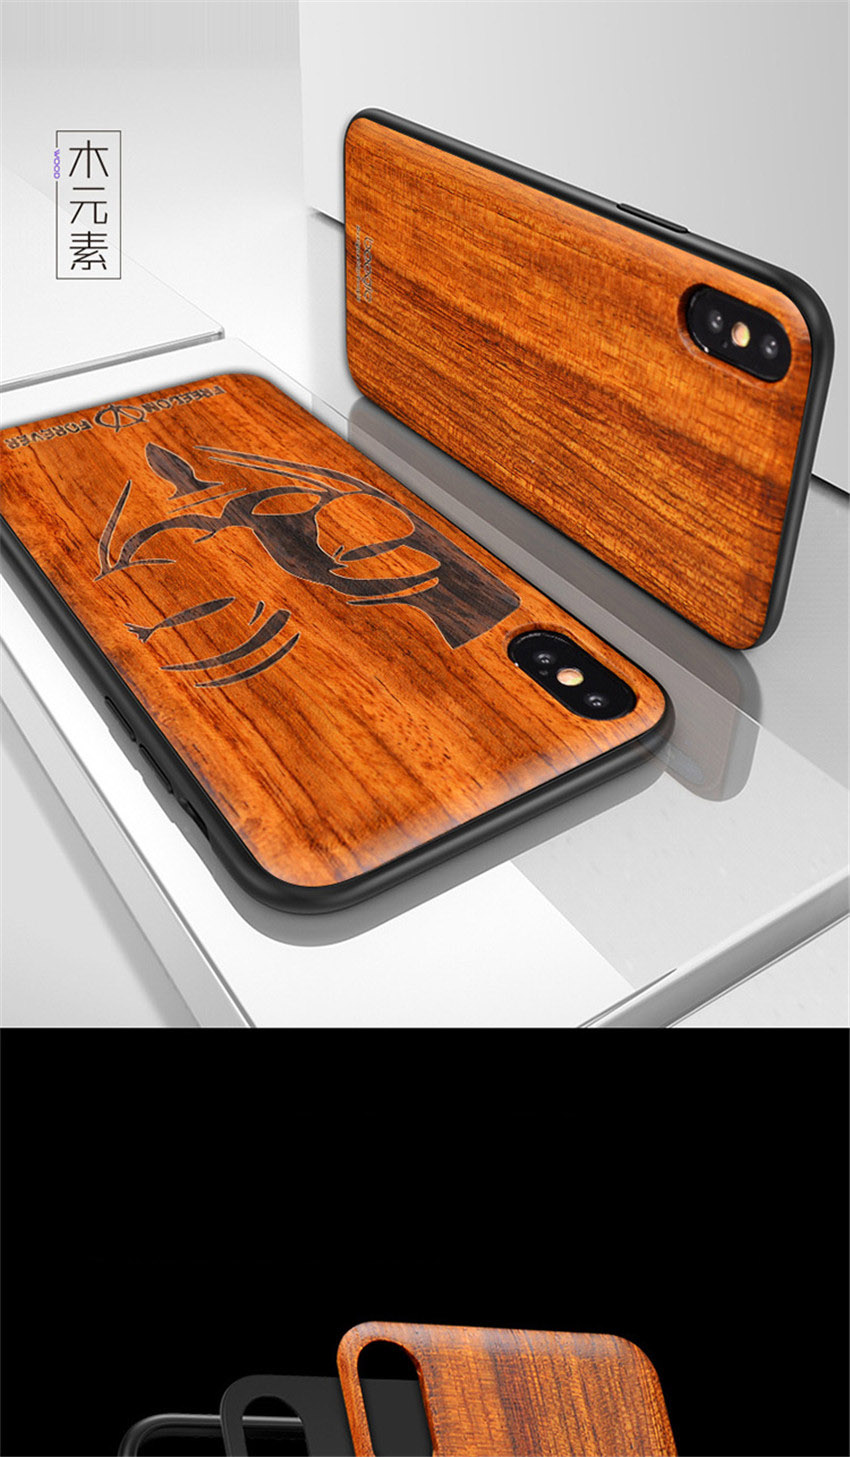 2018 New For iPhone XS Max Case Slim Wood Back Cover TPU Bumper Case For iPhone X iPhone XS Phone Cases (3)